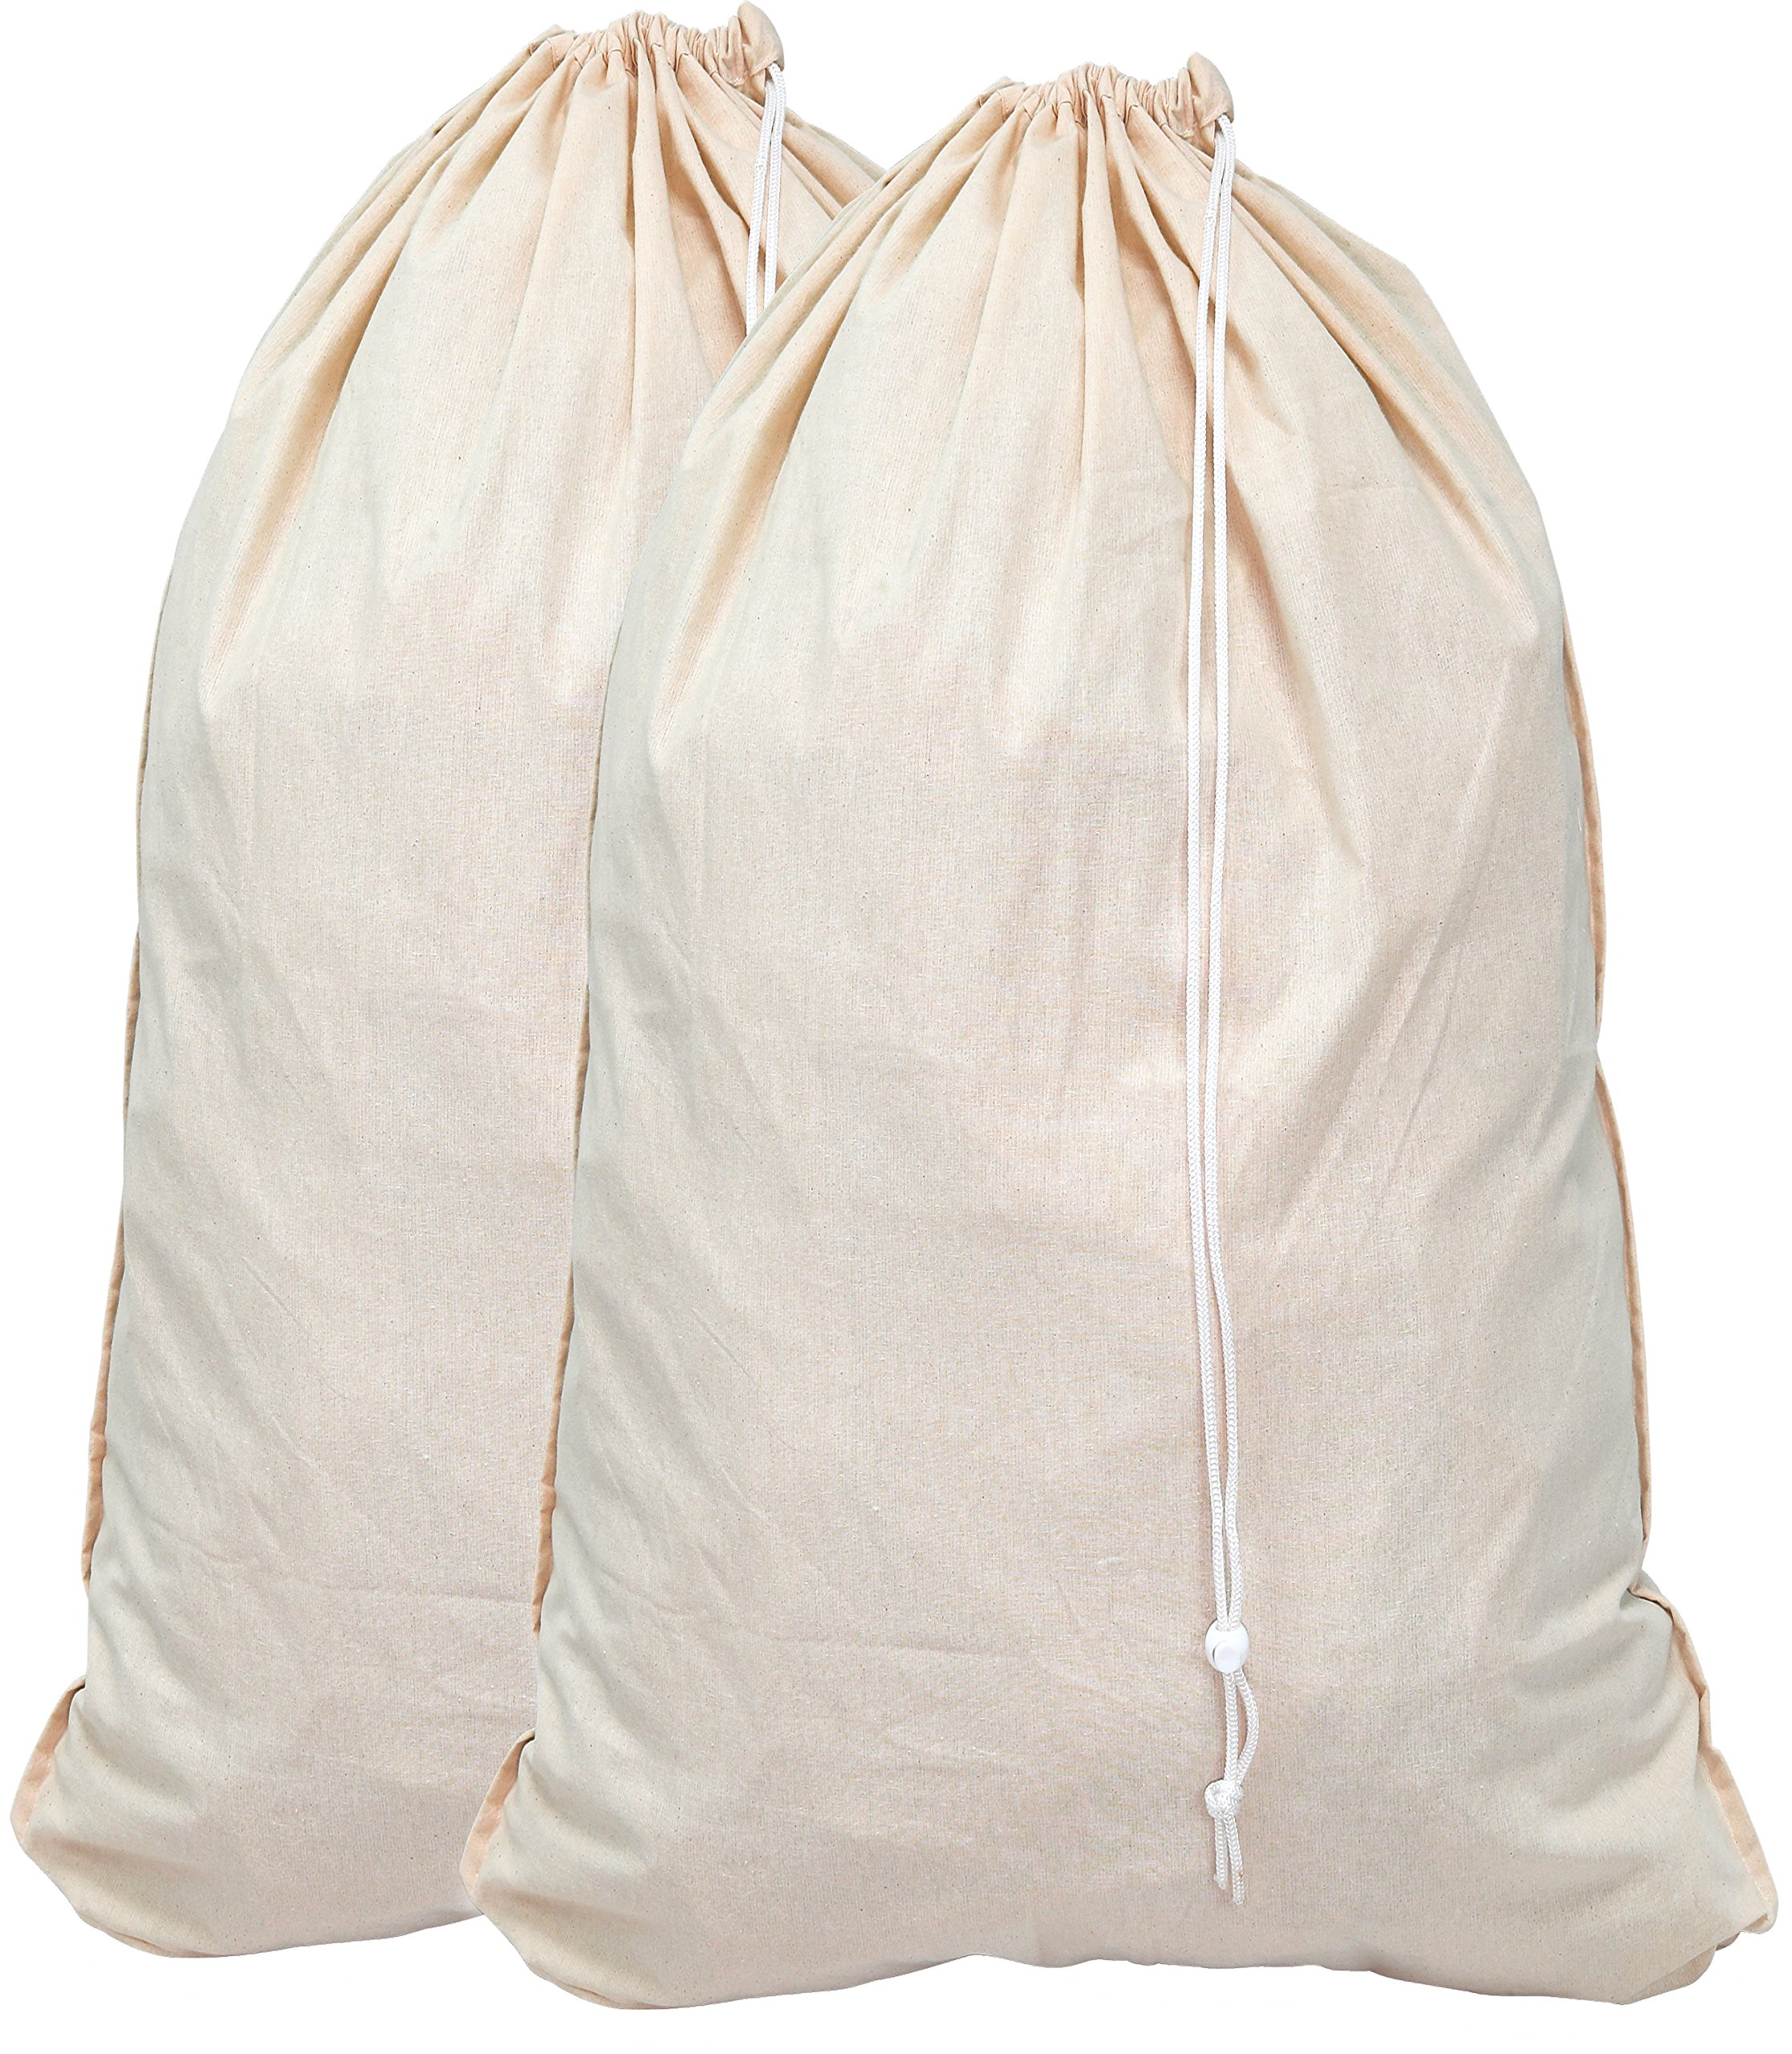 Simple Houseware 2 Pack - Extra Large Natural Cotton Laundry Bag, Beige (28'' x 36'')